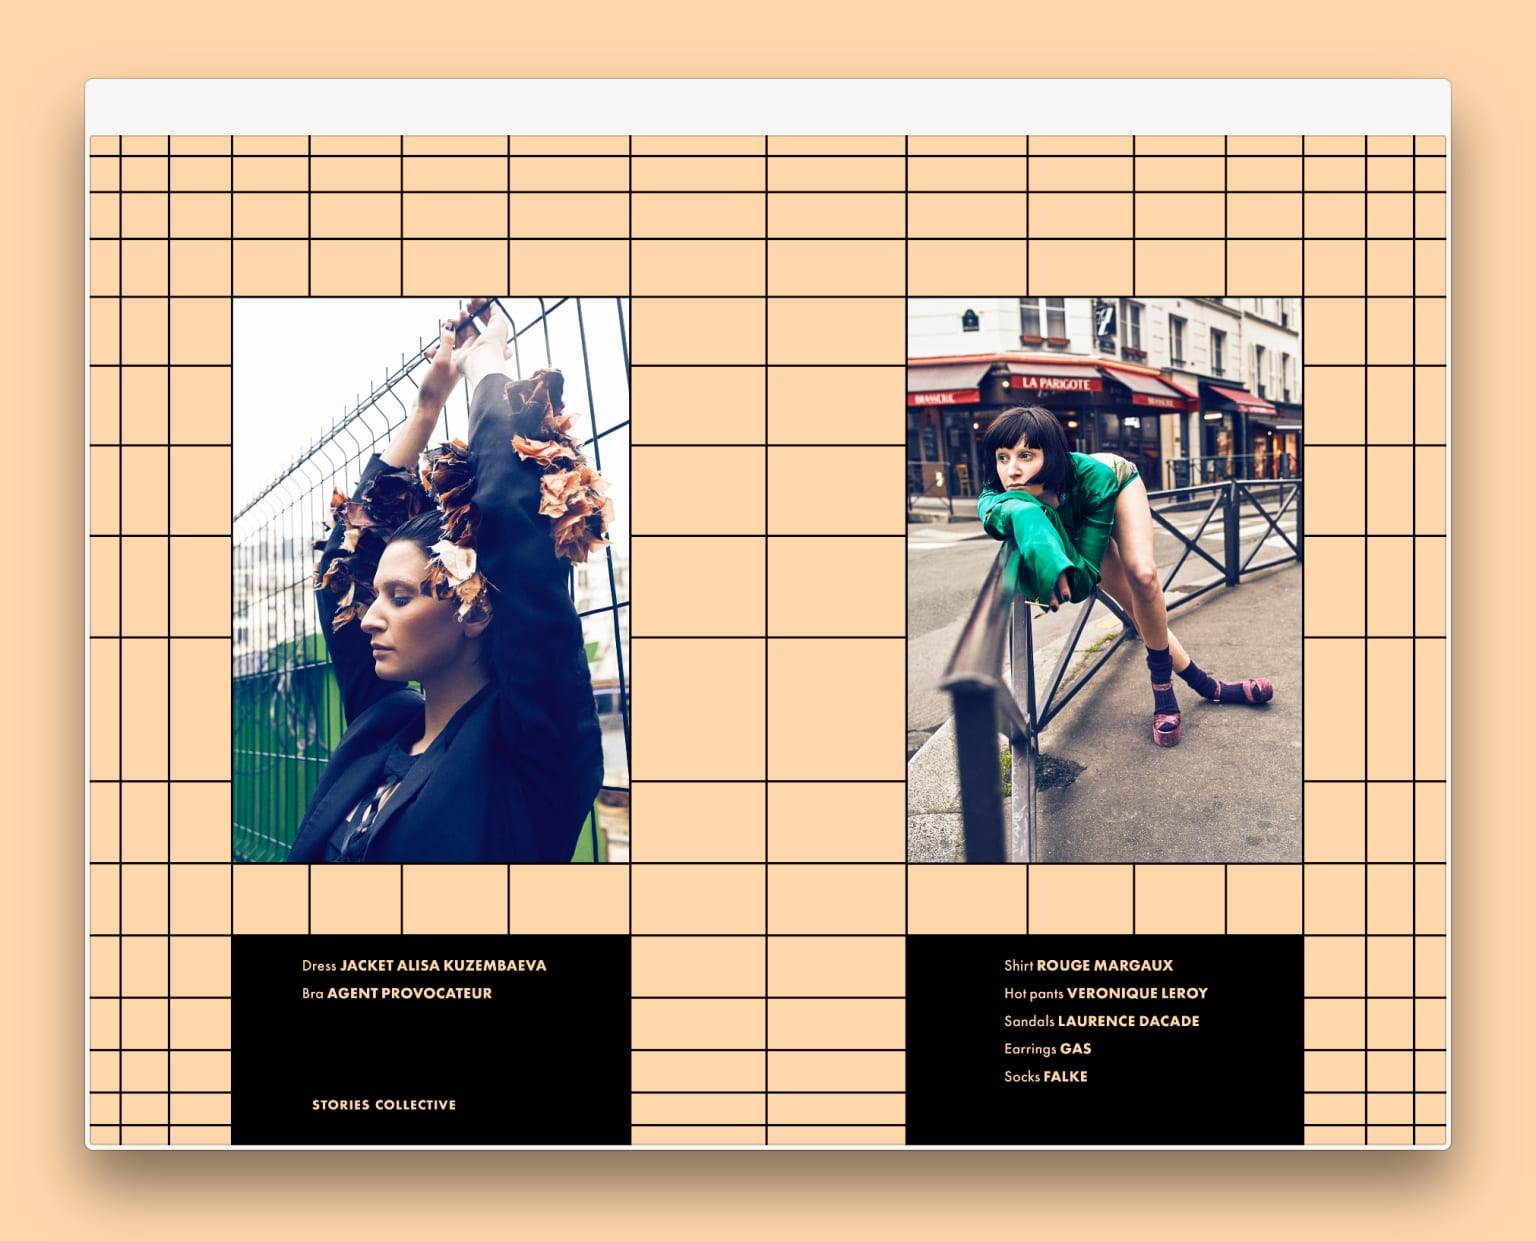 Stories Collective – Collecting Moments